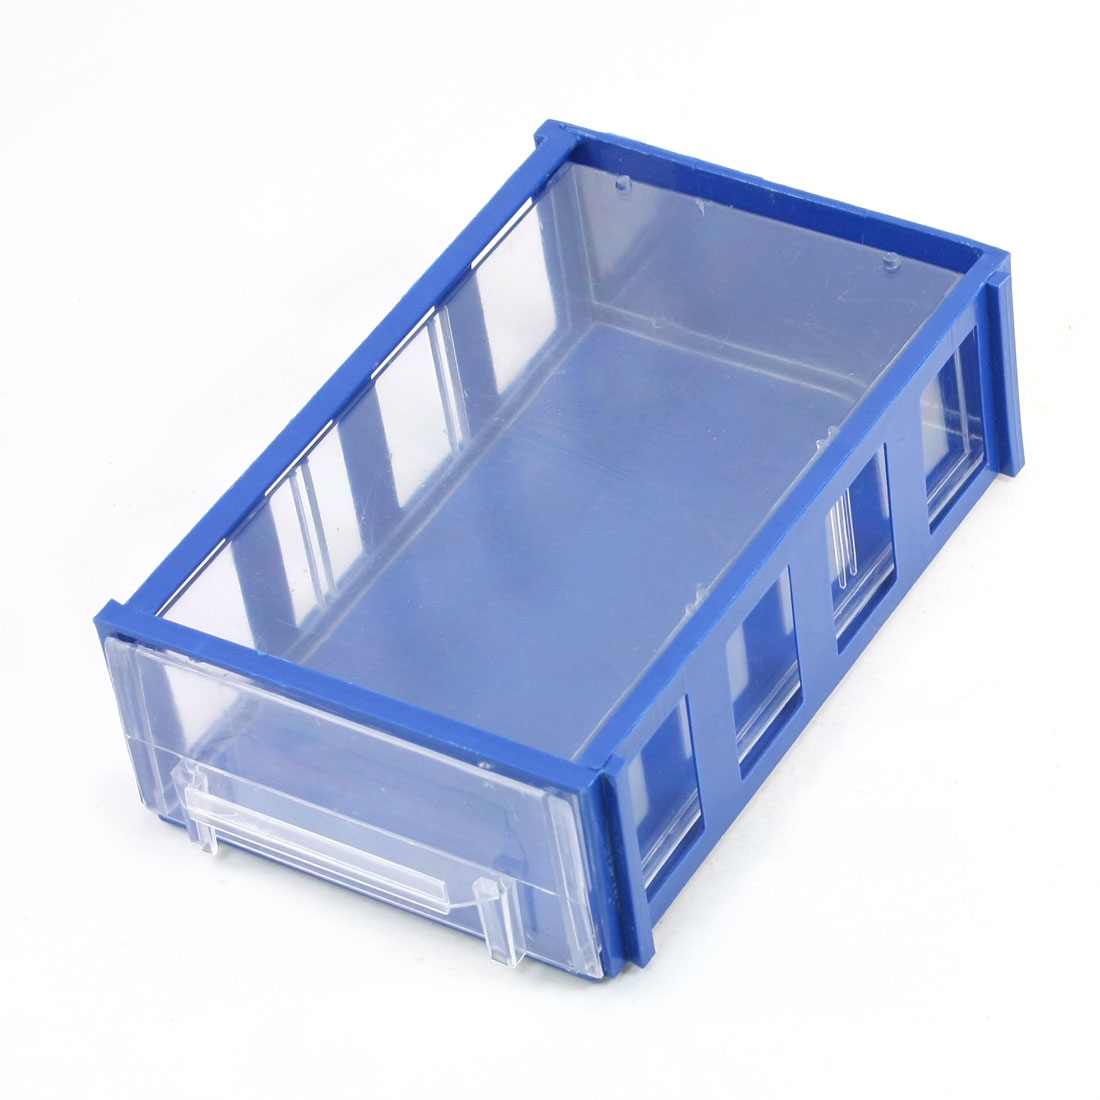 Electronic Components Organizer Storage Box Case Holder Container Blue